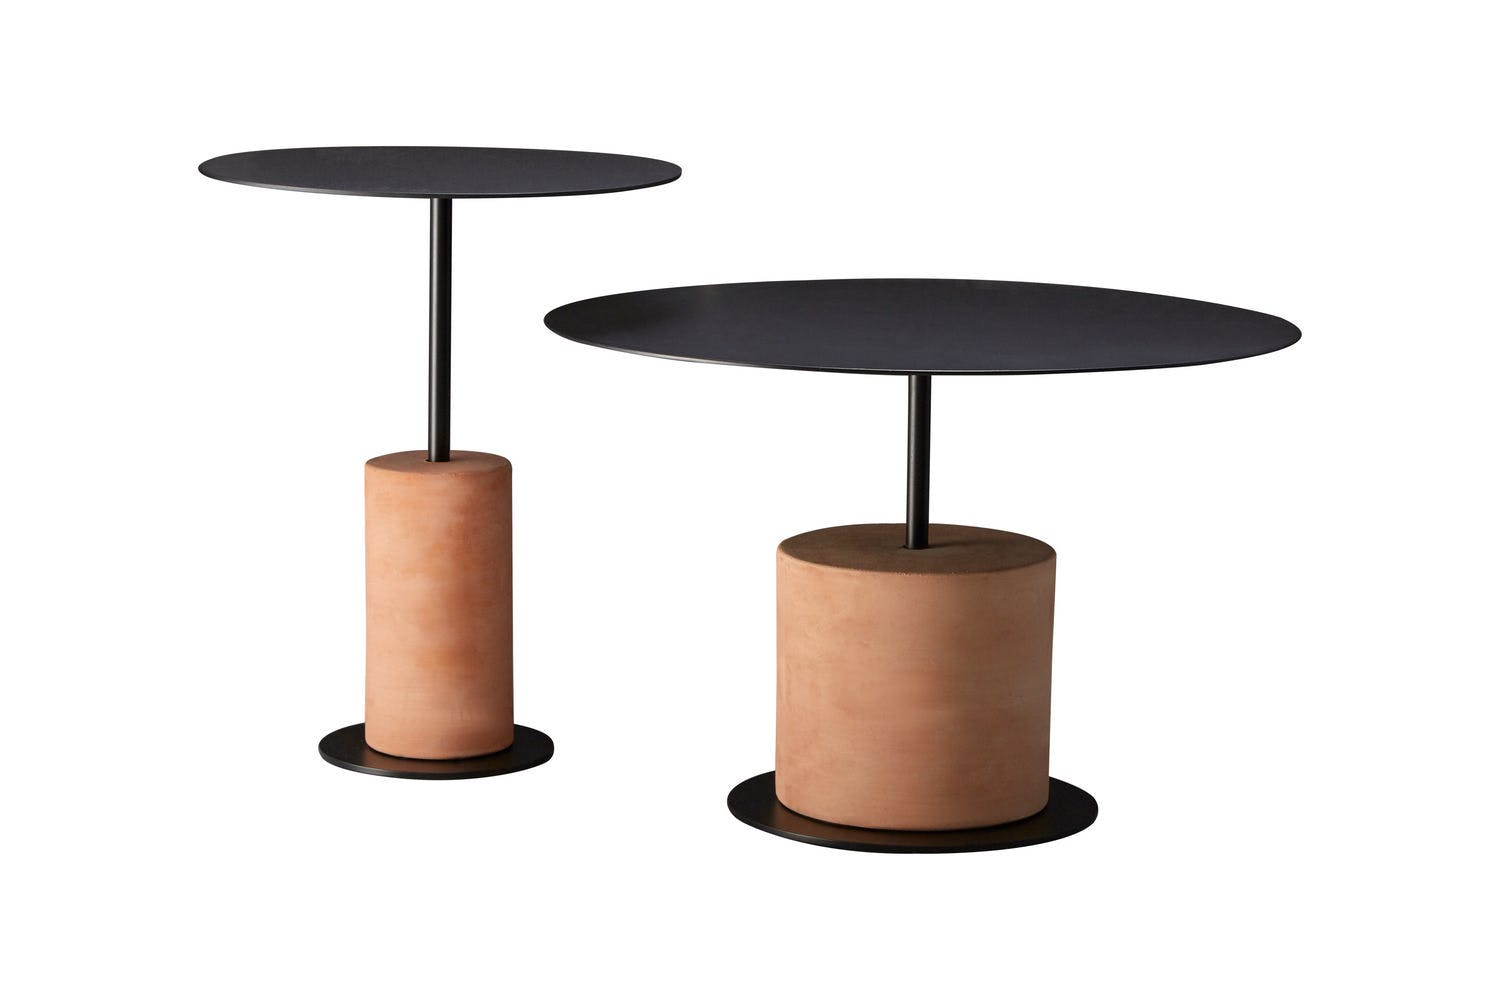 Side Table Tom.Louie Side Table By Tom Fereday For Sp01 Space Furniture